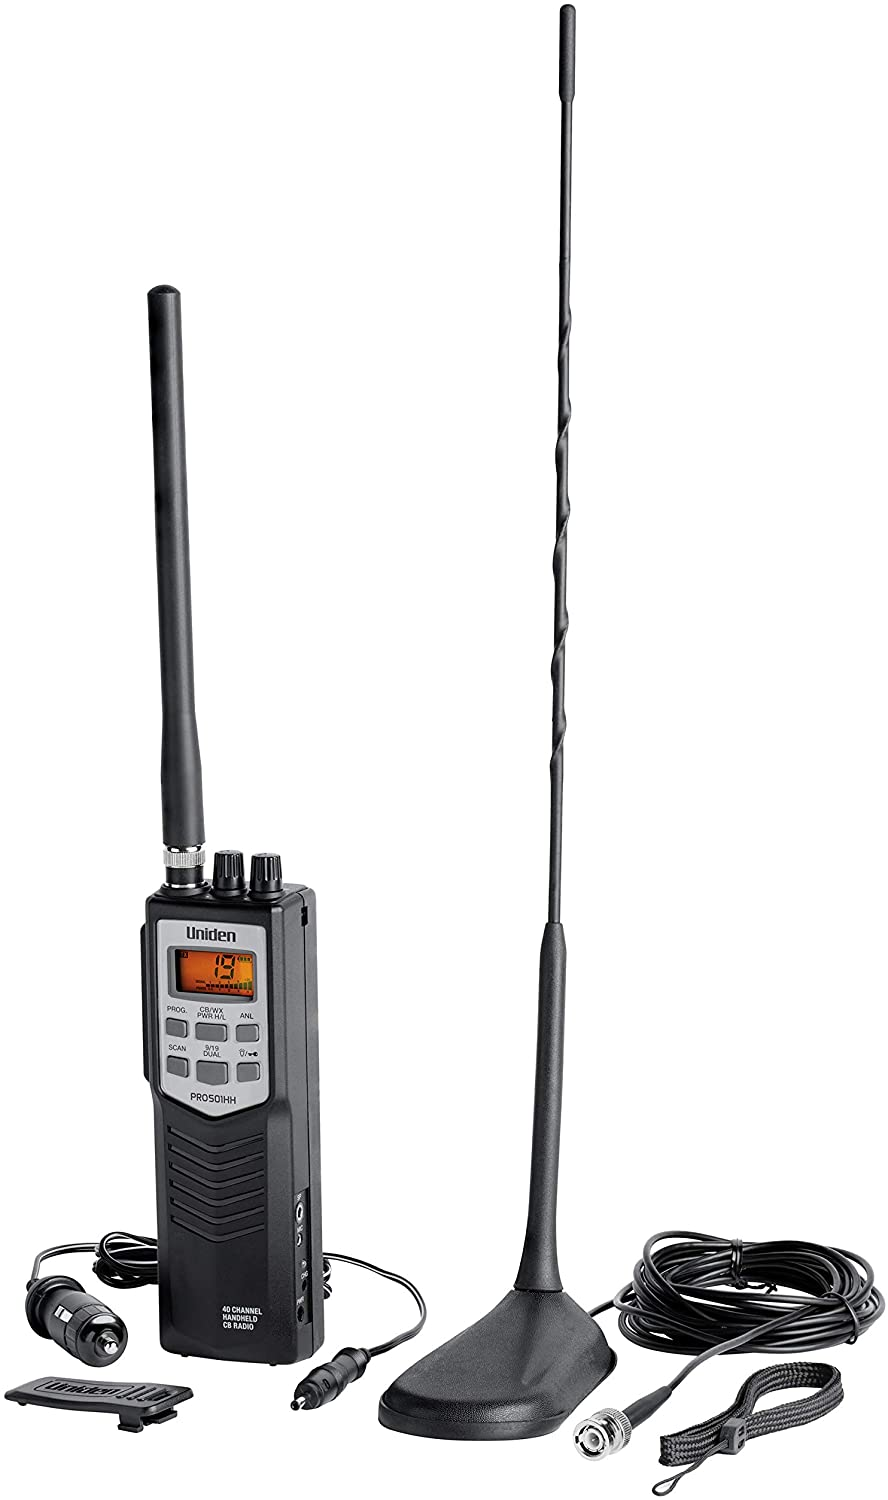 Auto Noise Limiter Two-Way Emergency Radio and Full Channel Scan NOAA Weather Uniden PRO501TK Pro-Series 40-Channel Portable Handheld CB Radio Includes High-Gain Magnet Mount Antenna